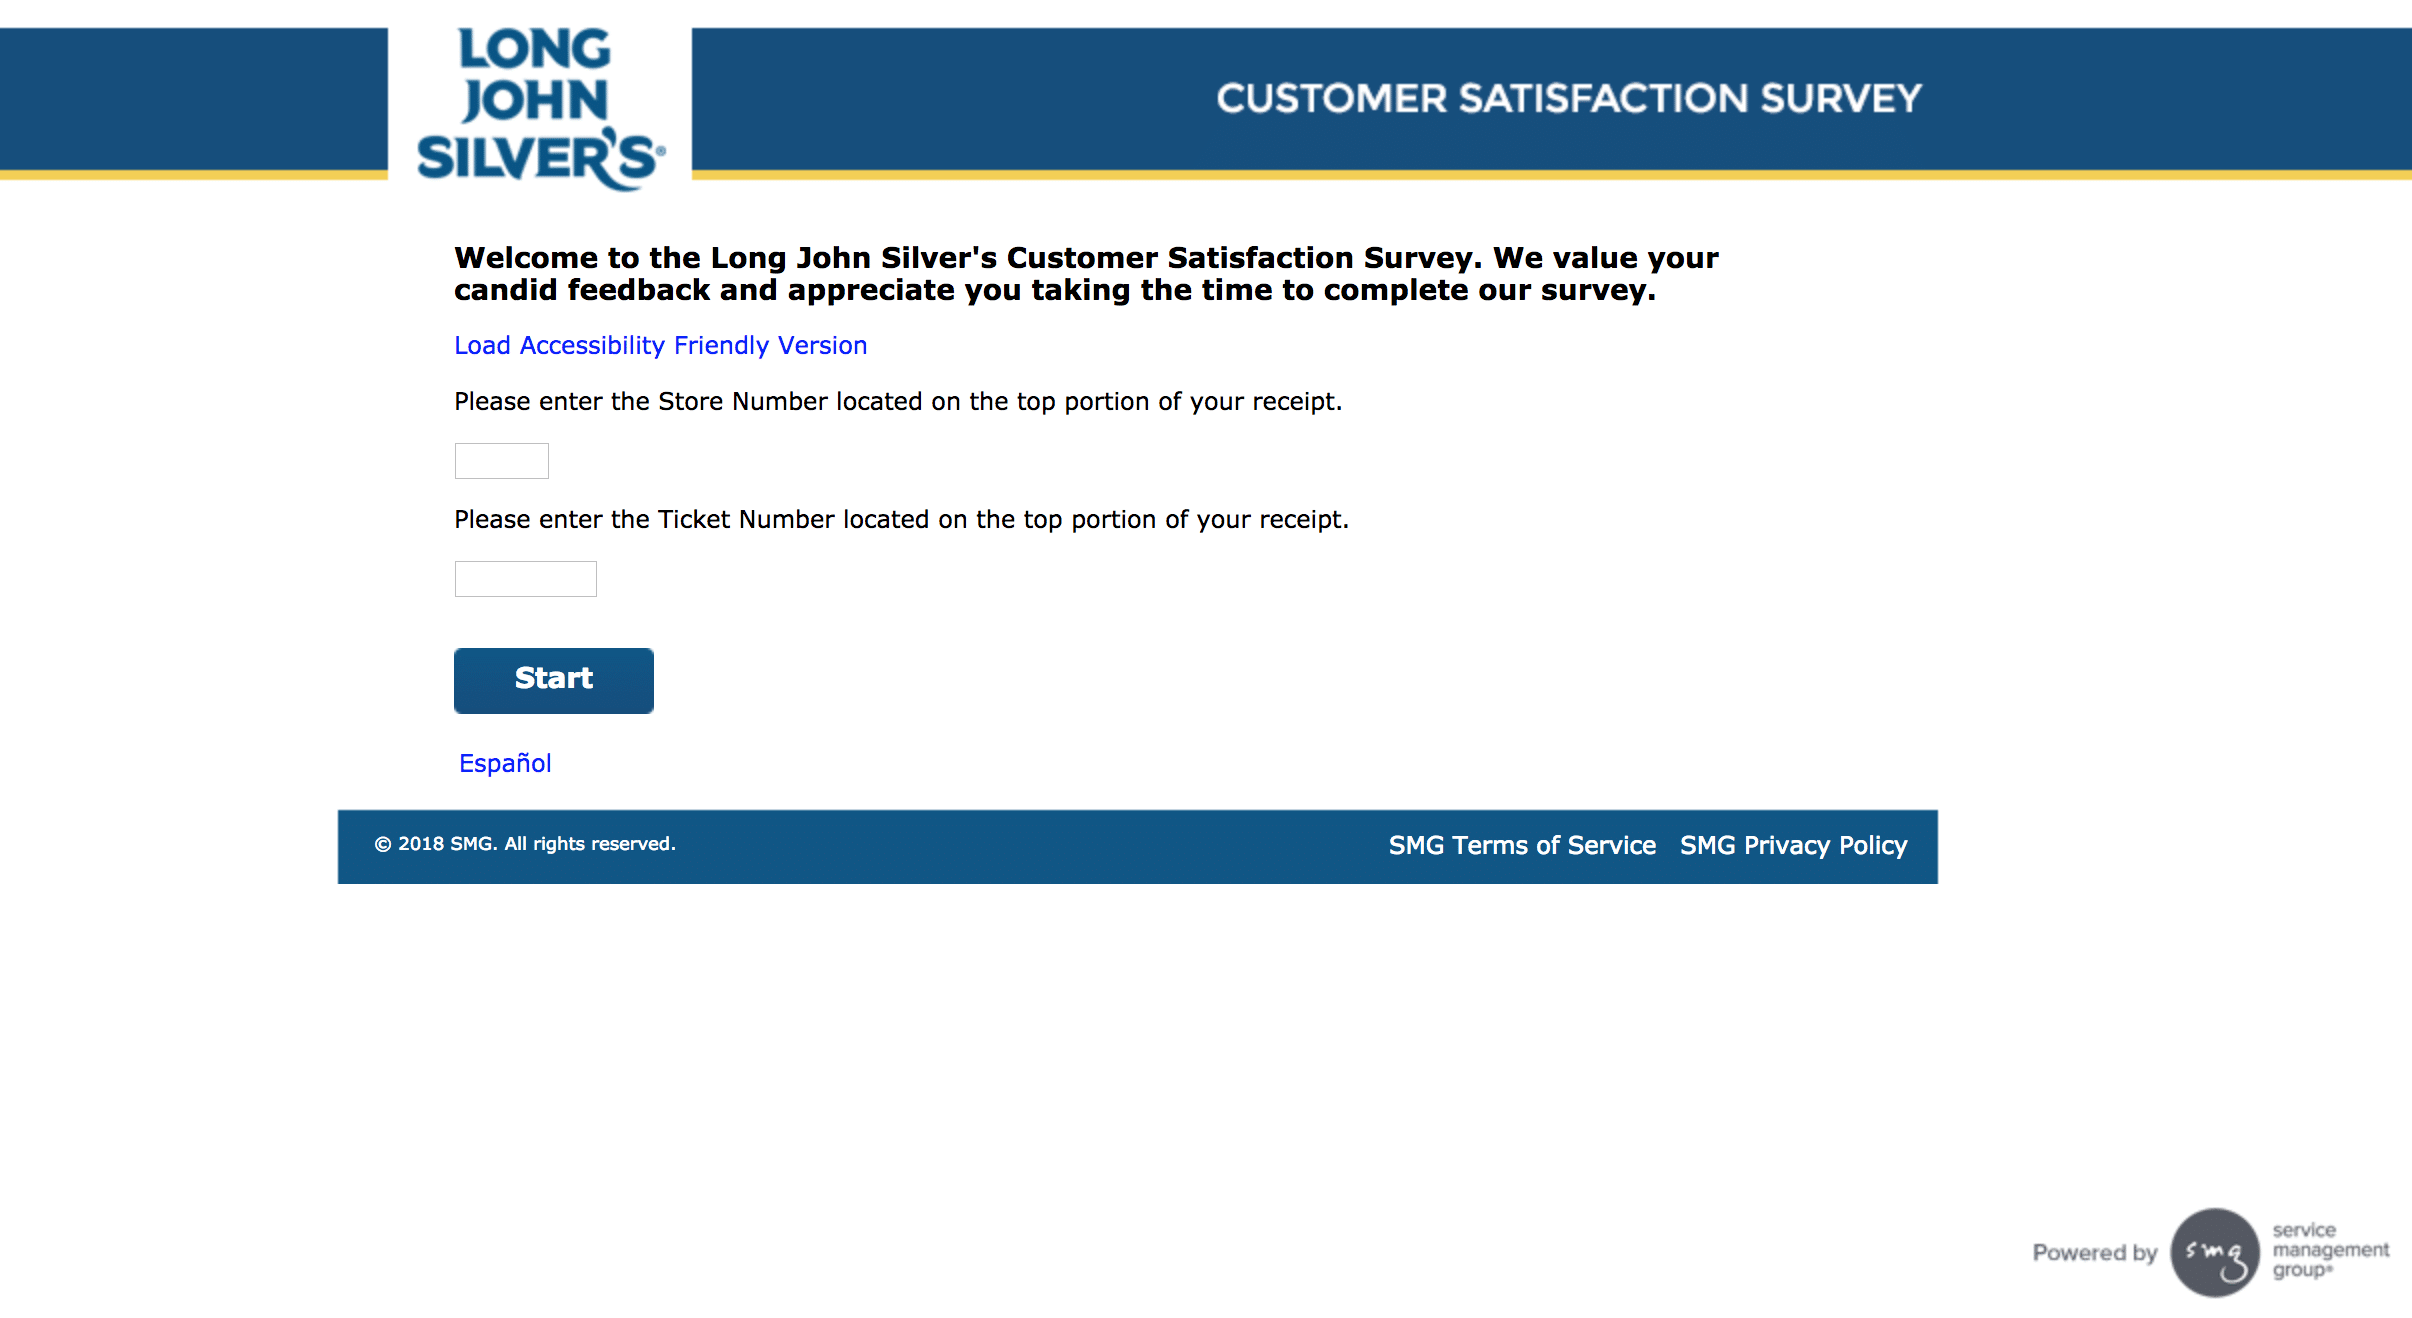 If you received a survey invitation that asking you to leave your feedback about your recent Long John Silver's experience, you can now go to the website agrariantraps.ml and follow the instructions to participate in The Long John Silver's Customer Satisfaction Survey.